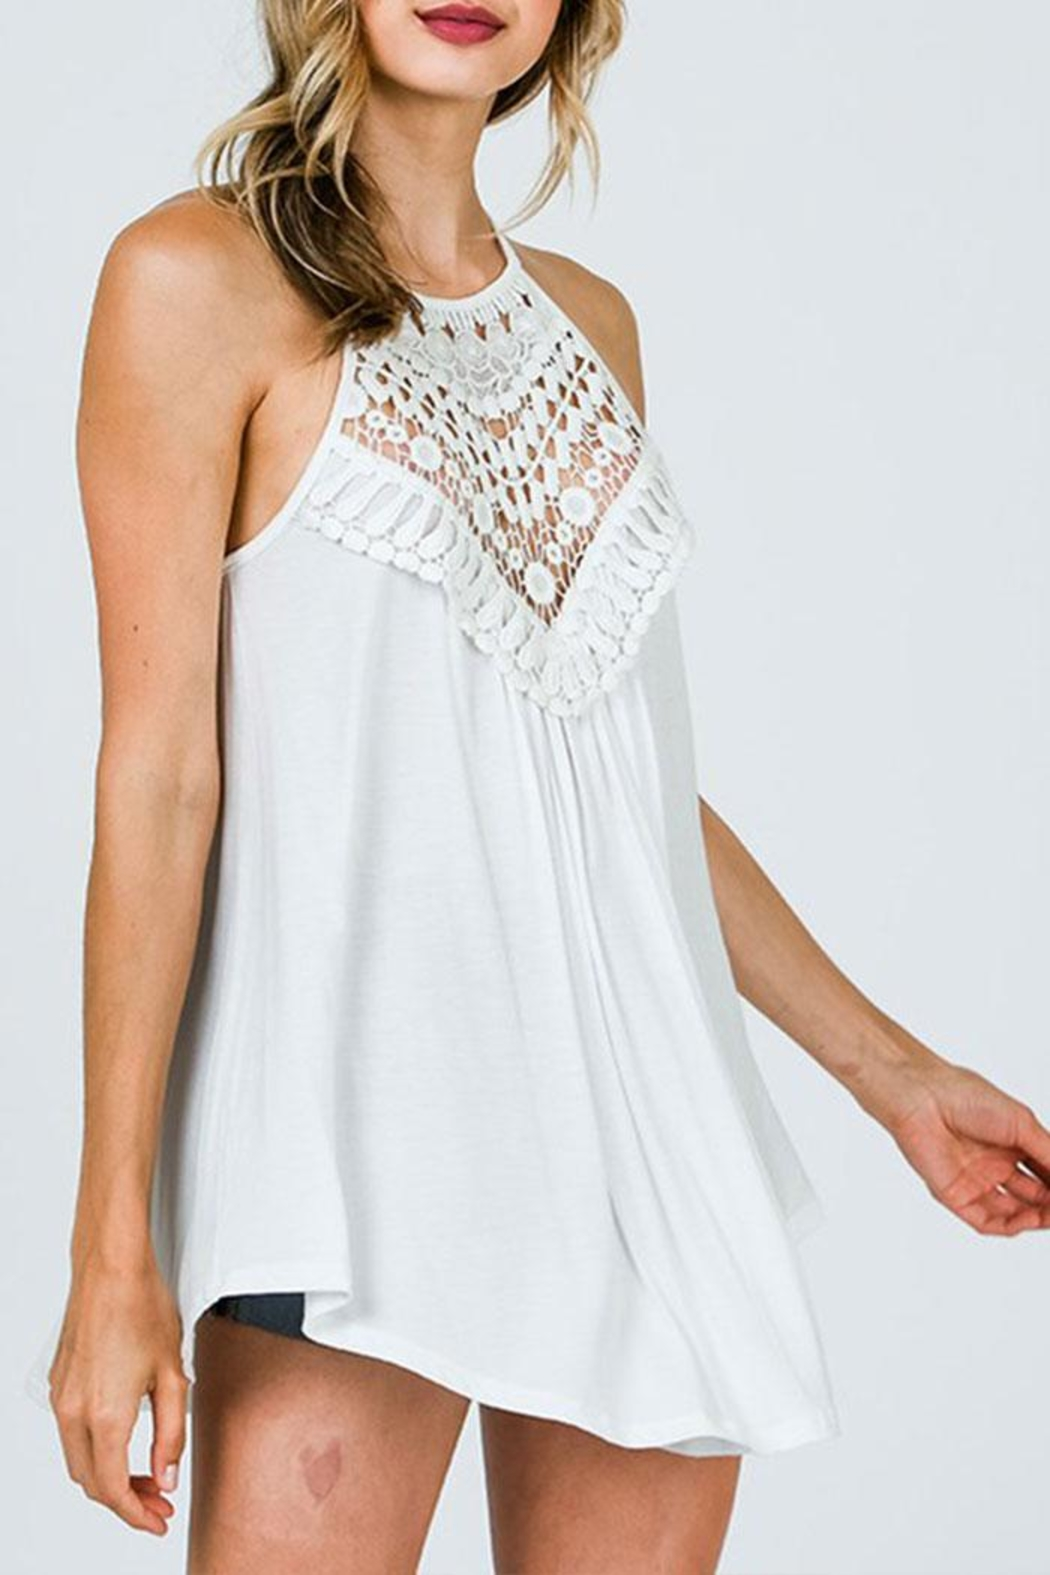 CY Fashion Crochet Lace Detail Tank Top - Front Cropped Image